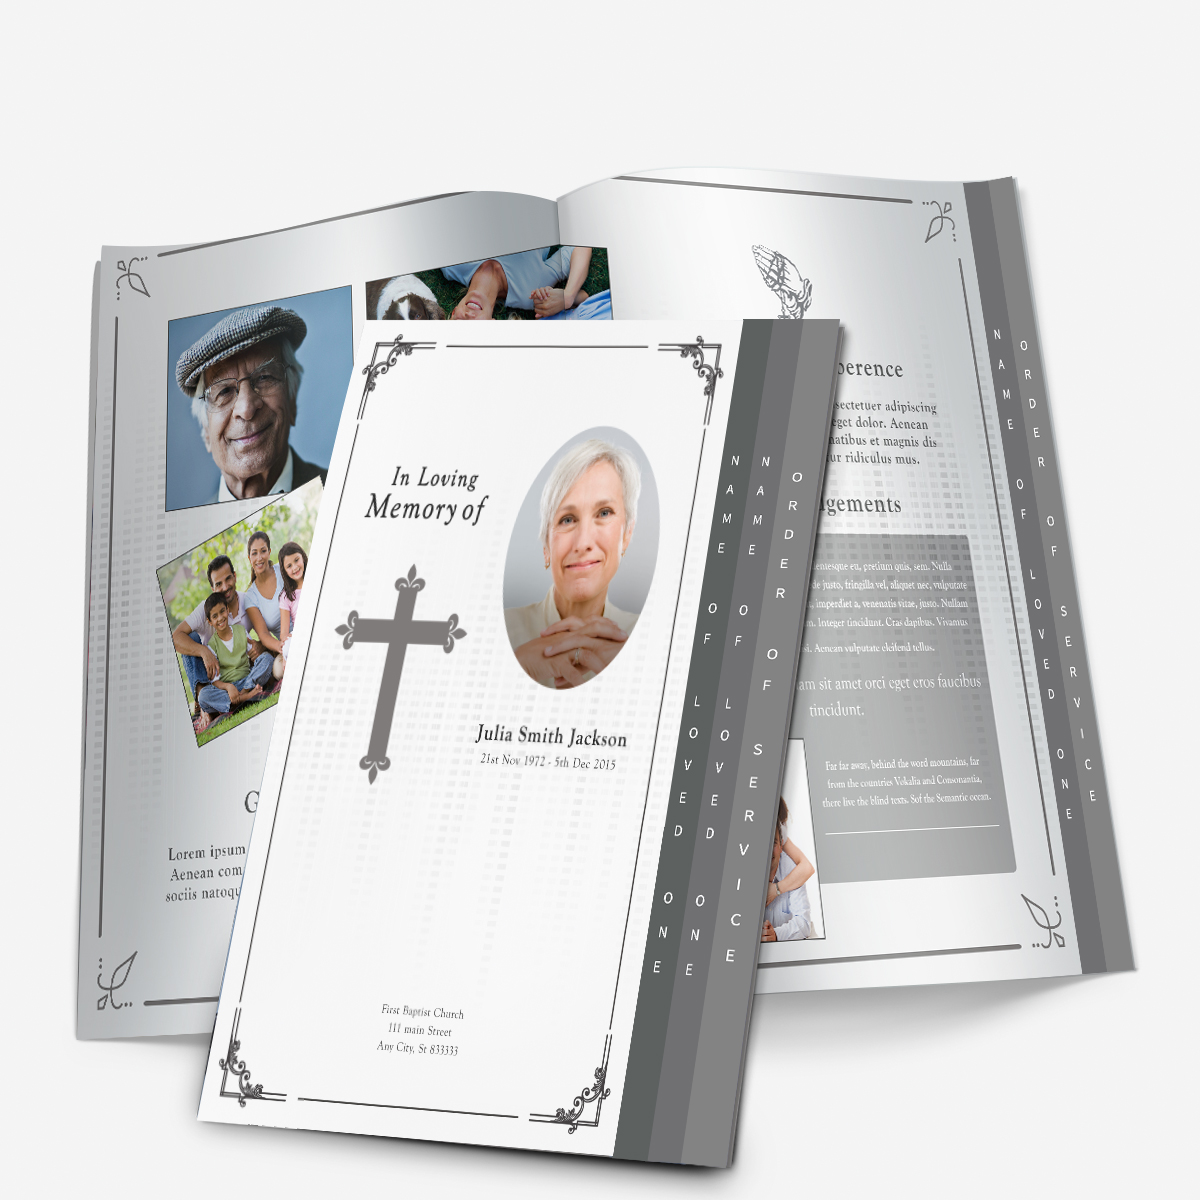 Obituary Cards Templates Lpn Travel Nurse Sample Resume The%2B4  Page%2BGraduated%2BTemplate Obituary Cards Templateshtml Free Printable  Memorial Service ...  Memorial Pamphlet Template Free